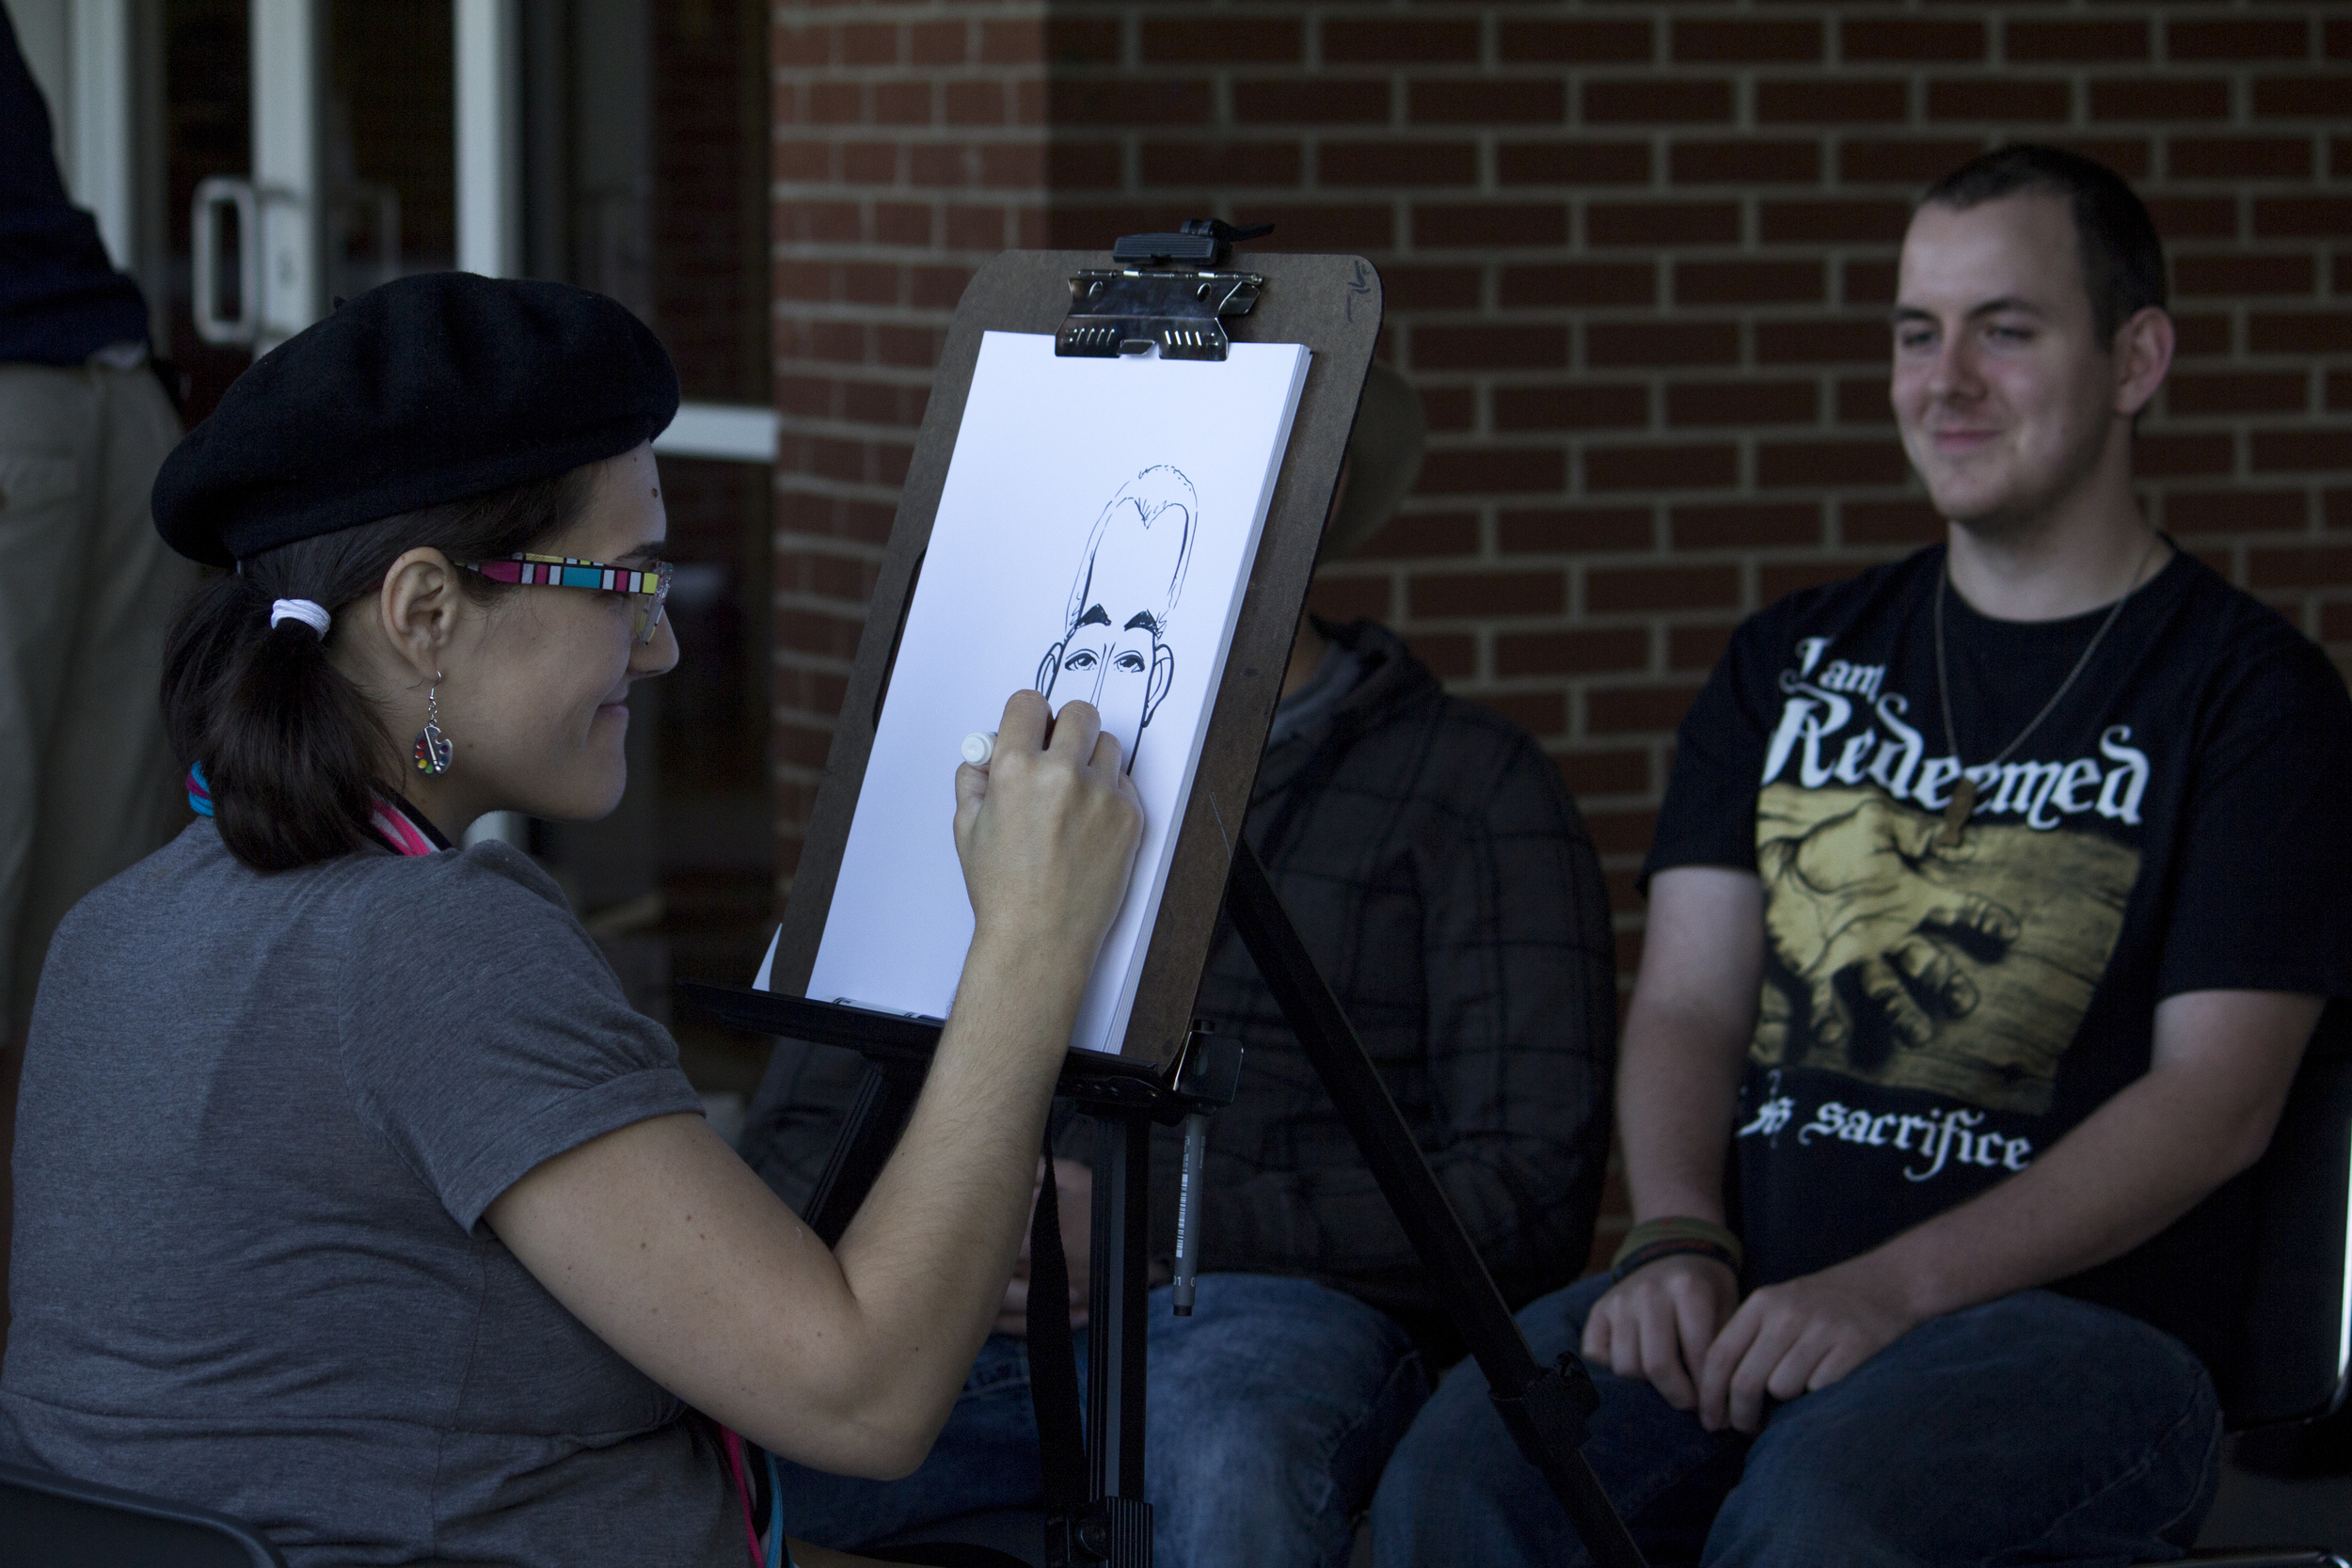 They also set up the ability to have students receive a caricature of themselves with their friends.